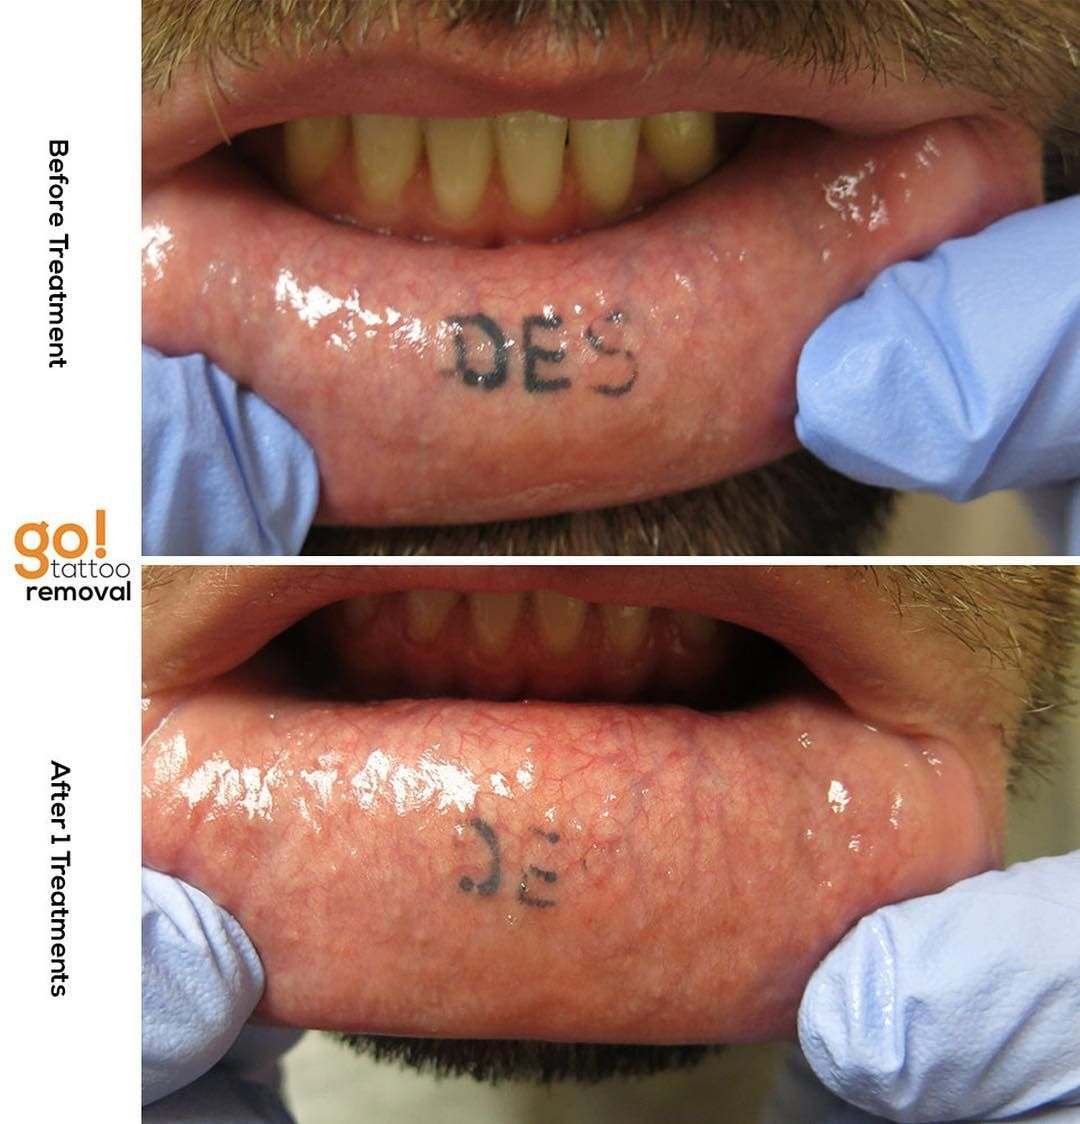 Inner lower lip tattoos rarely stay and often fade on